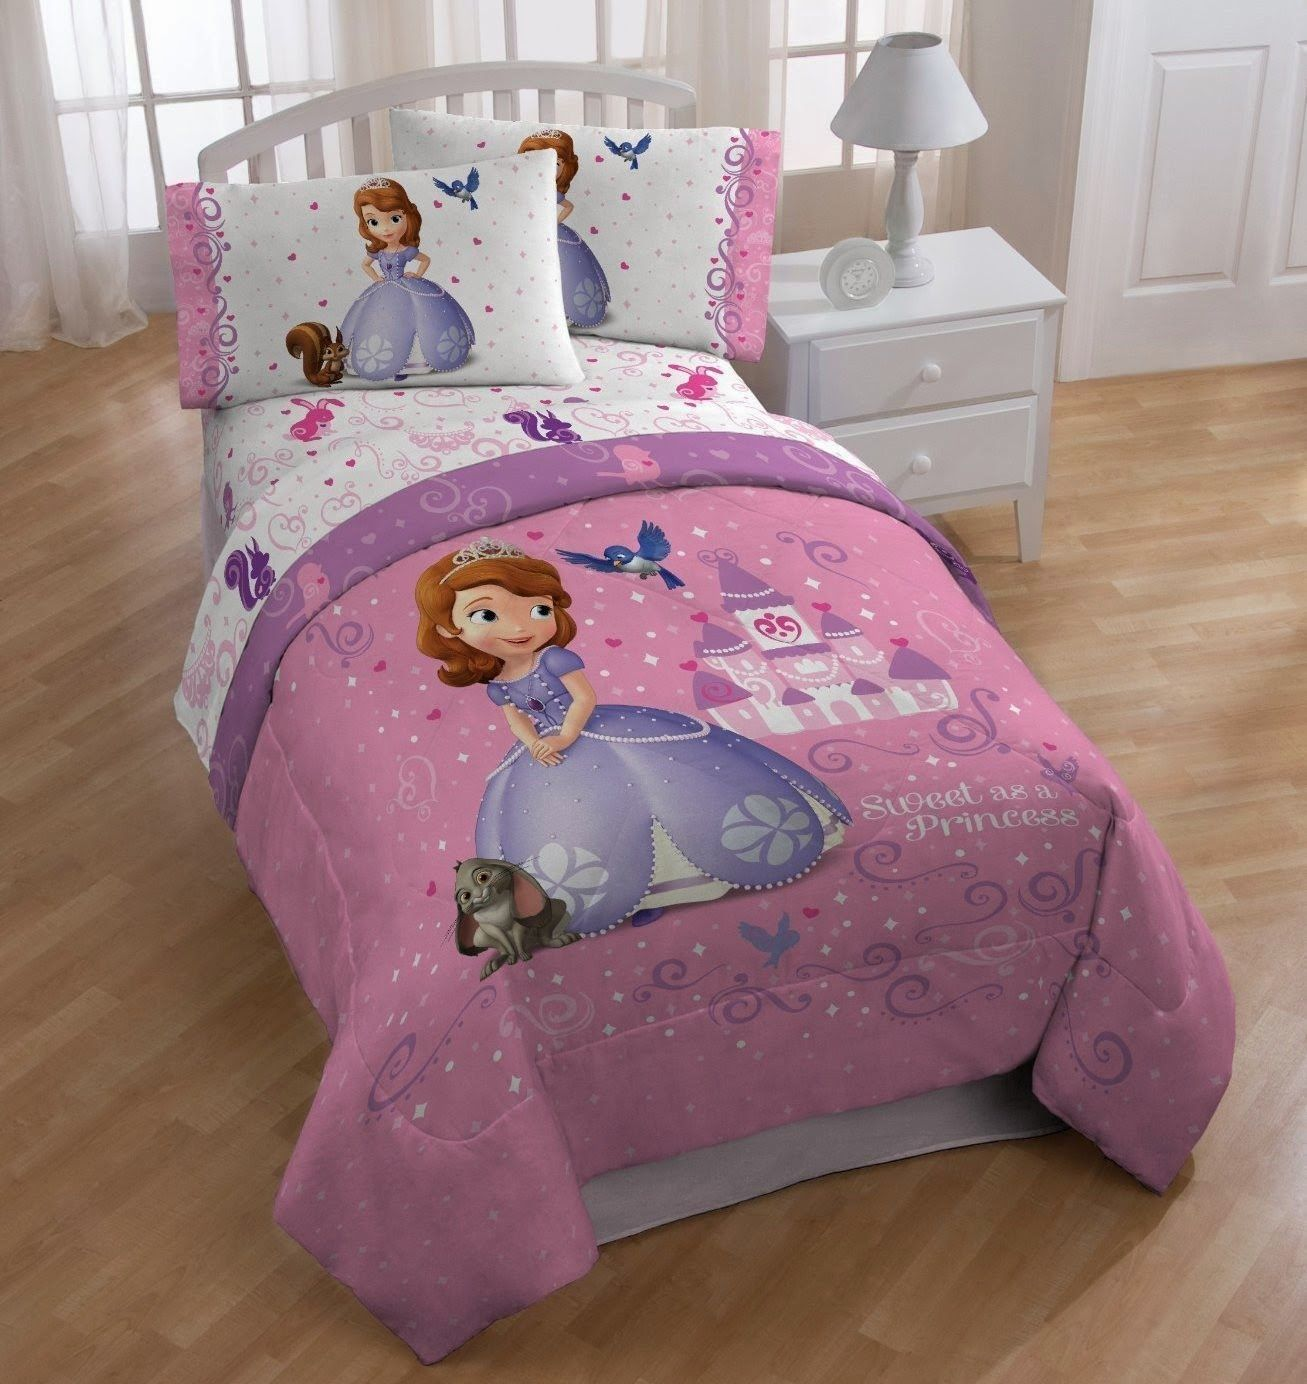 Bedroom decor ideas and designs how to decorate a disney - Sofia the first bedroom ...